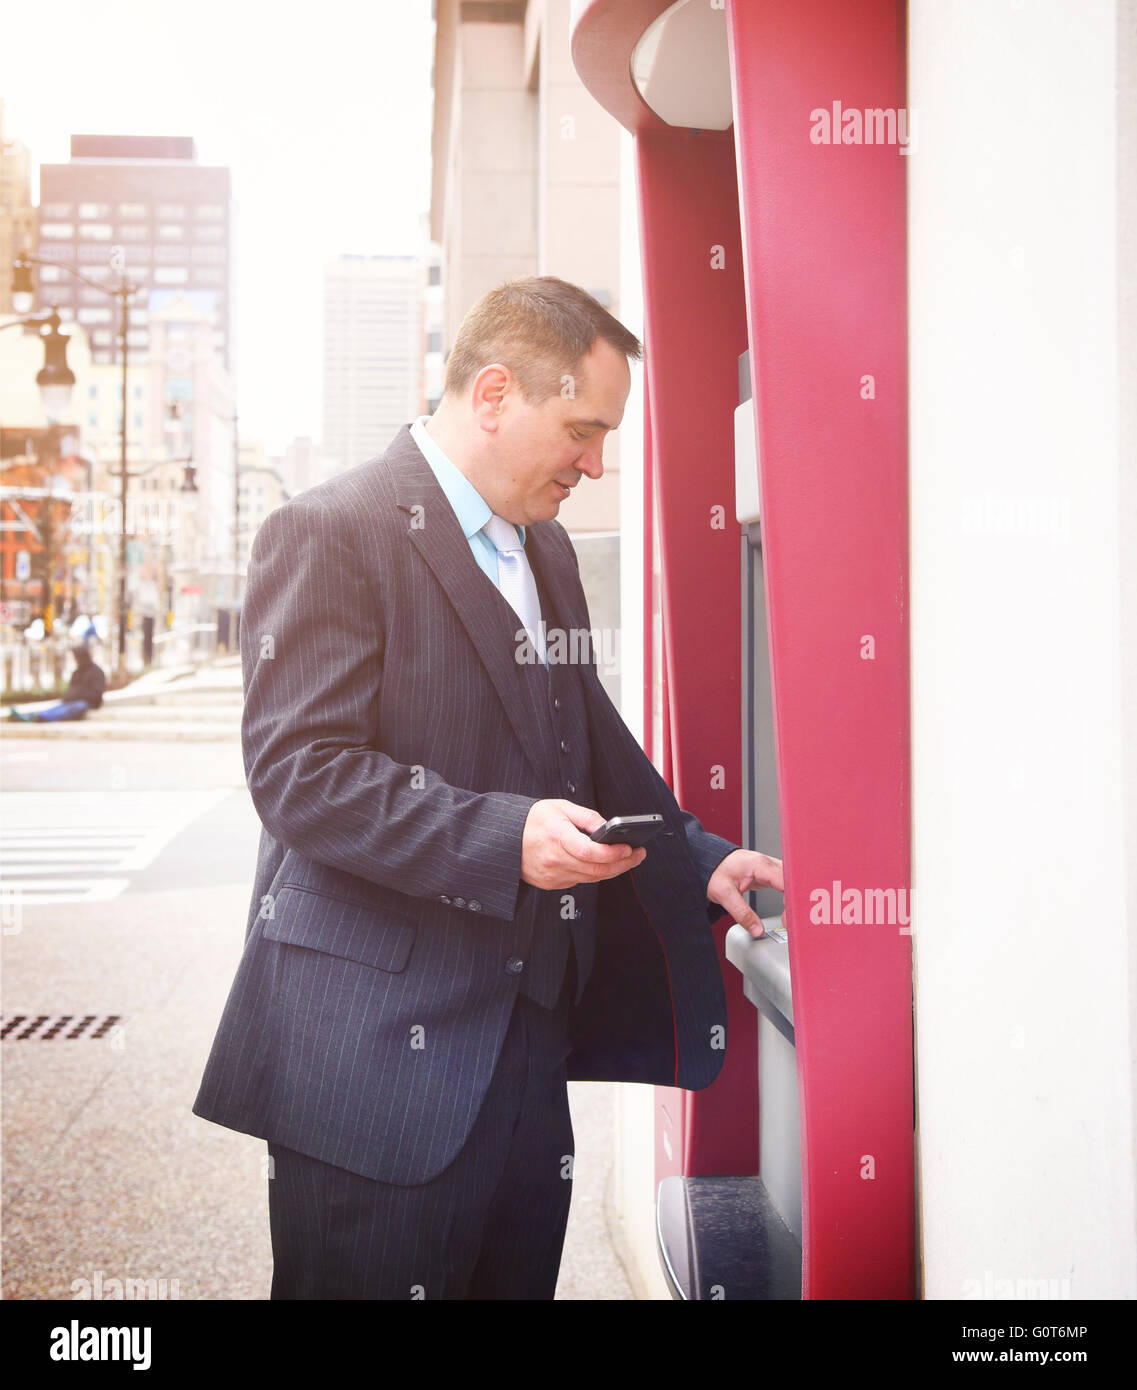 A business man is holding a phone and withdrawing money from his account at an automatic teller machine downtown - Stock Image